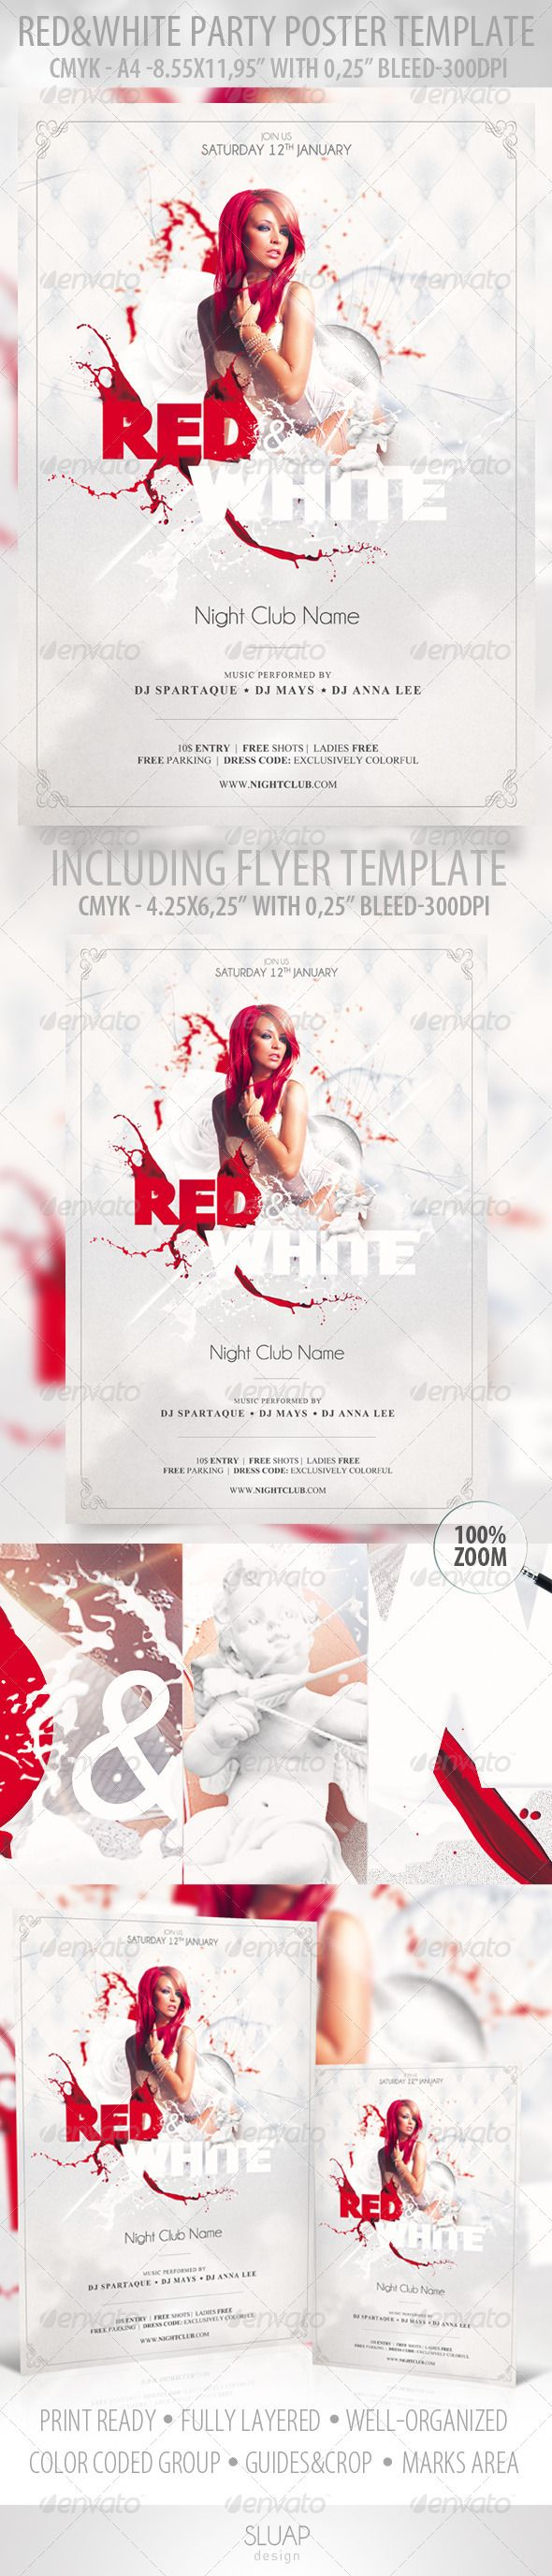 Red  White  Poster Template  Red  White  Flye  Template